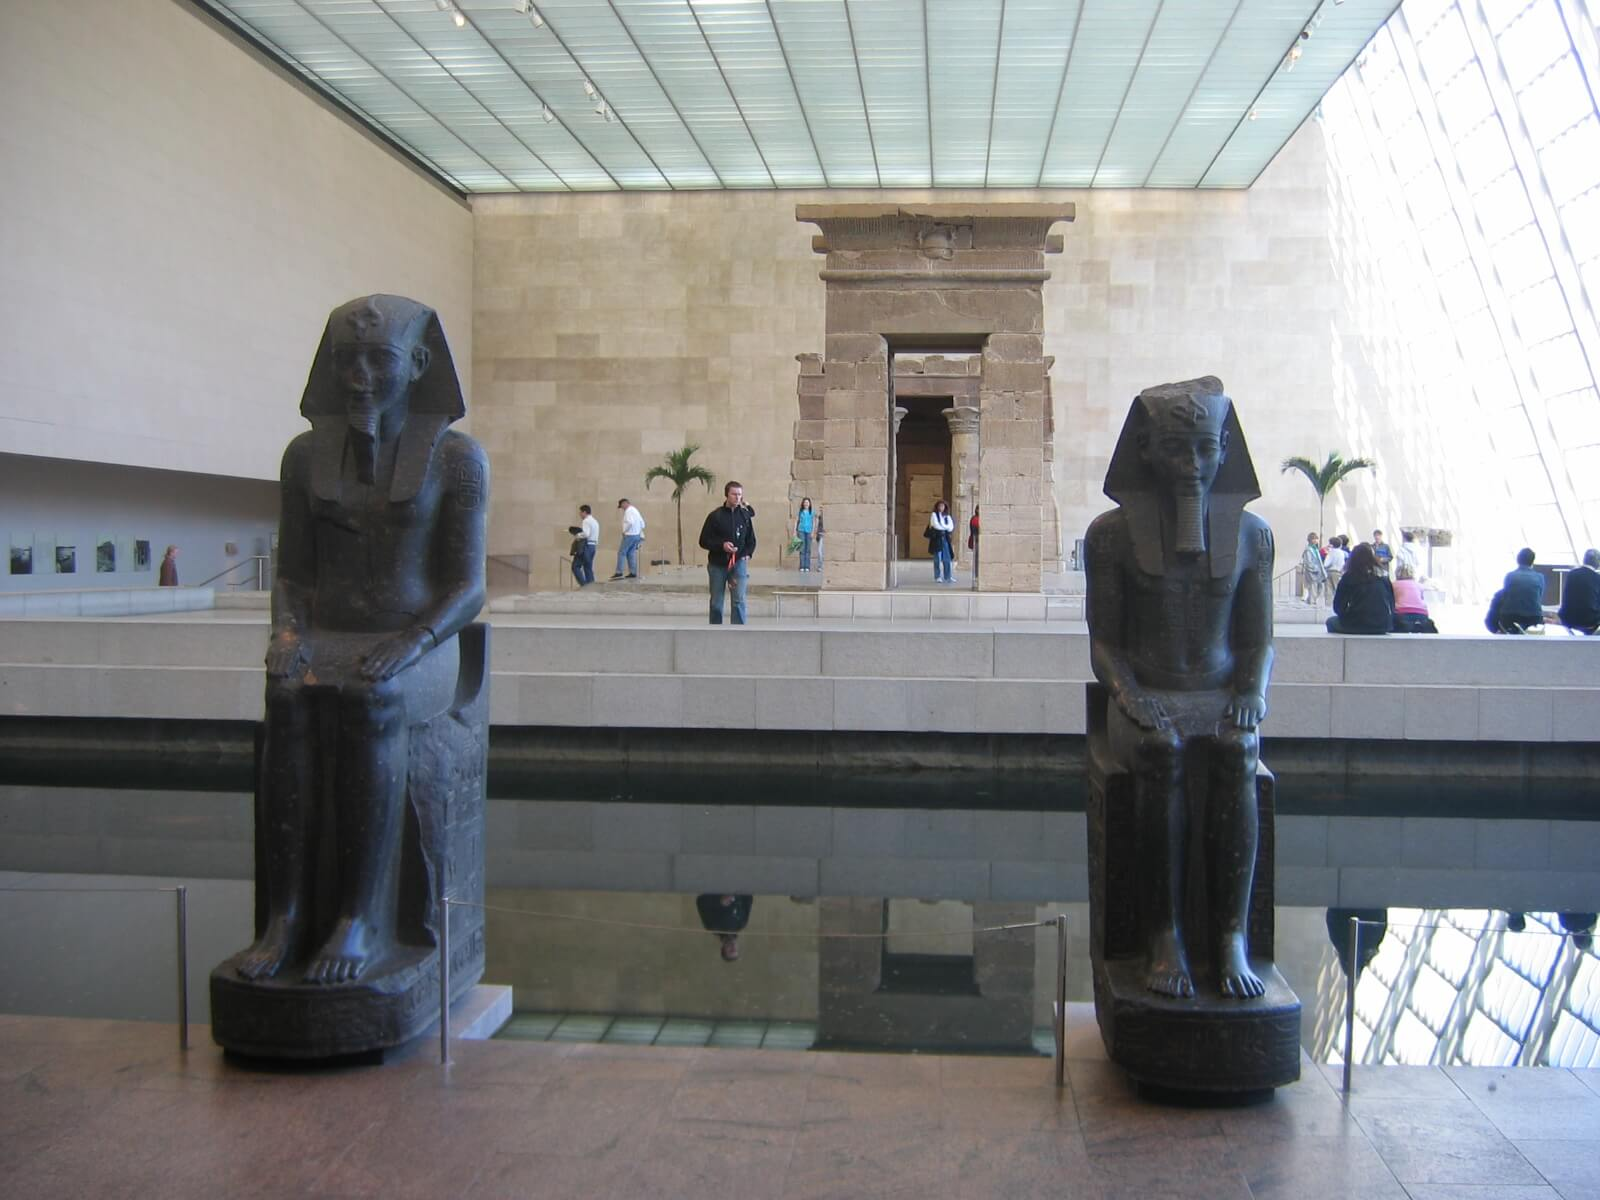 Temple of Dendur Things to do in NYC